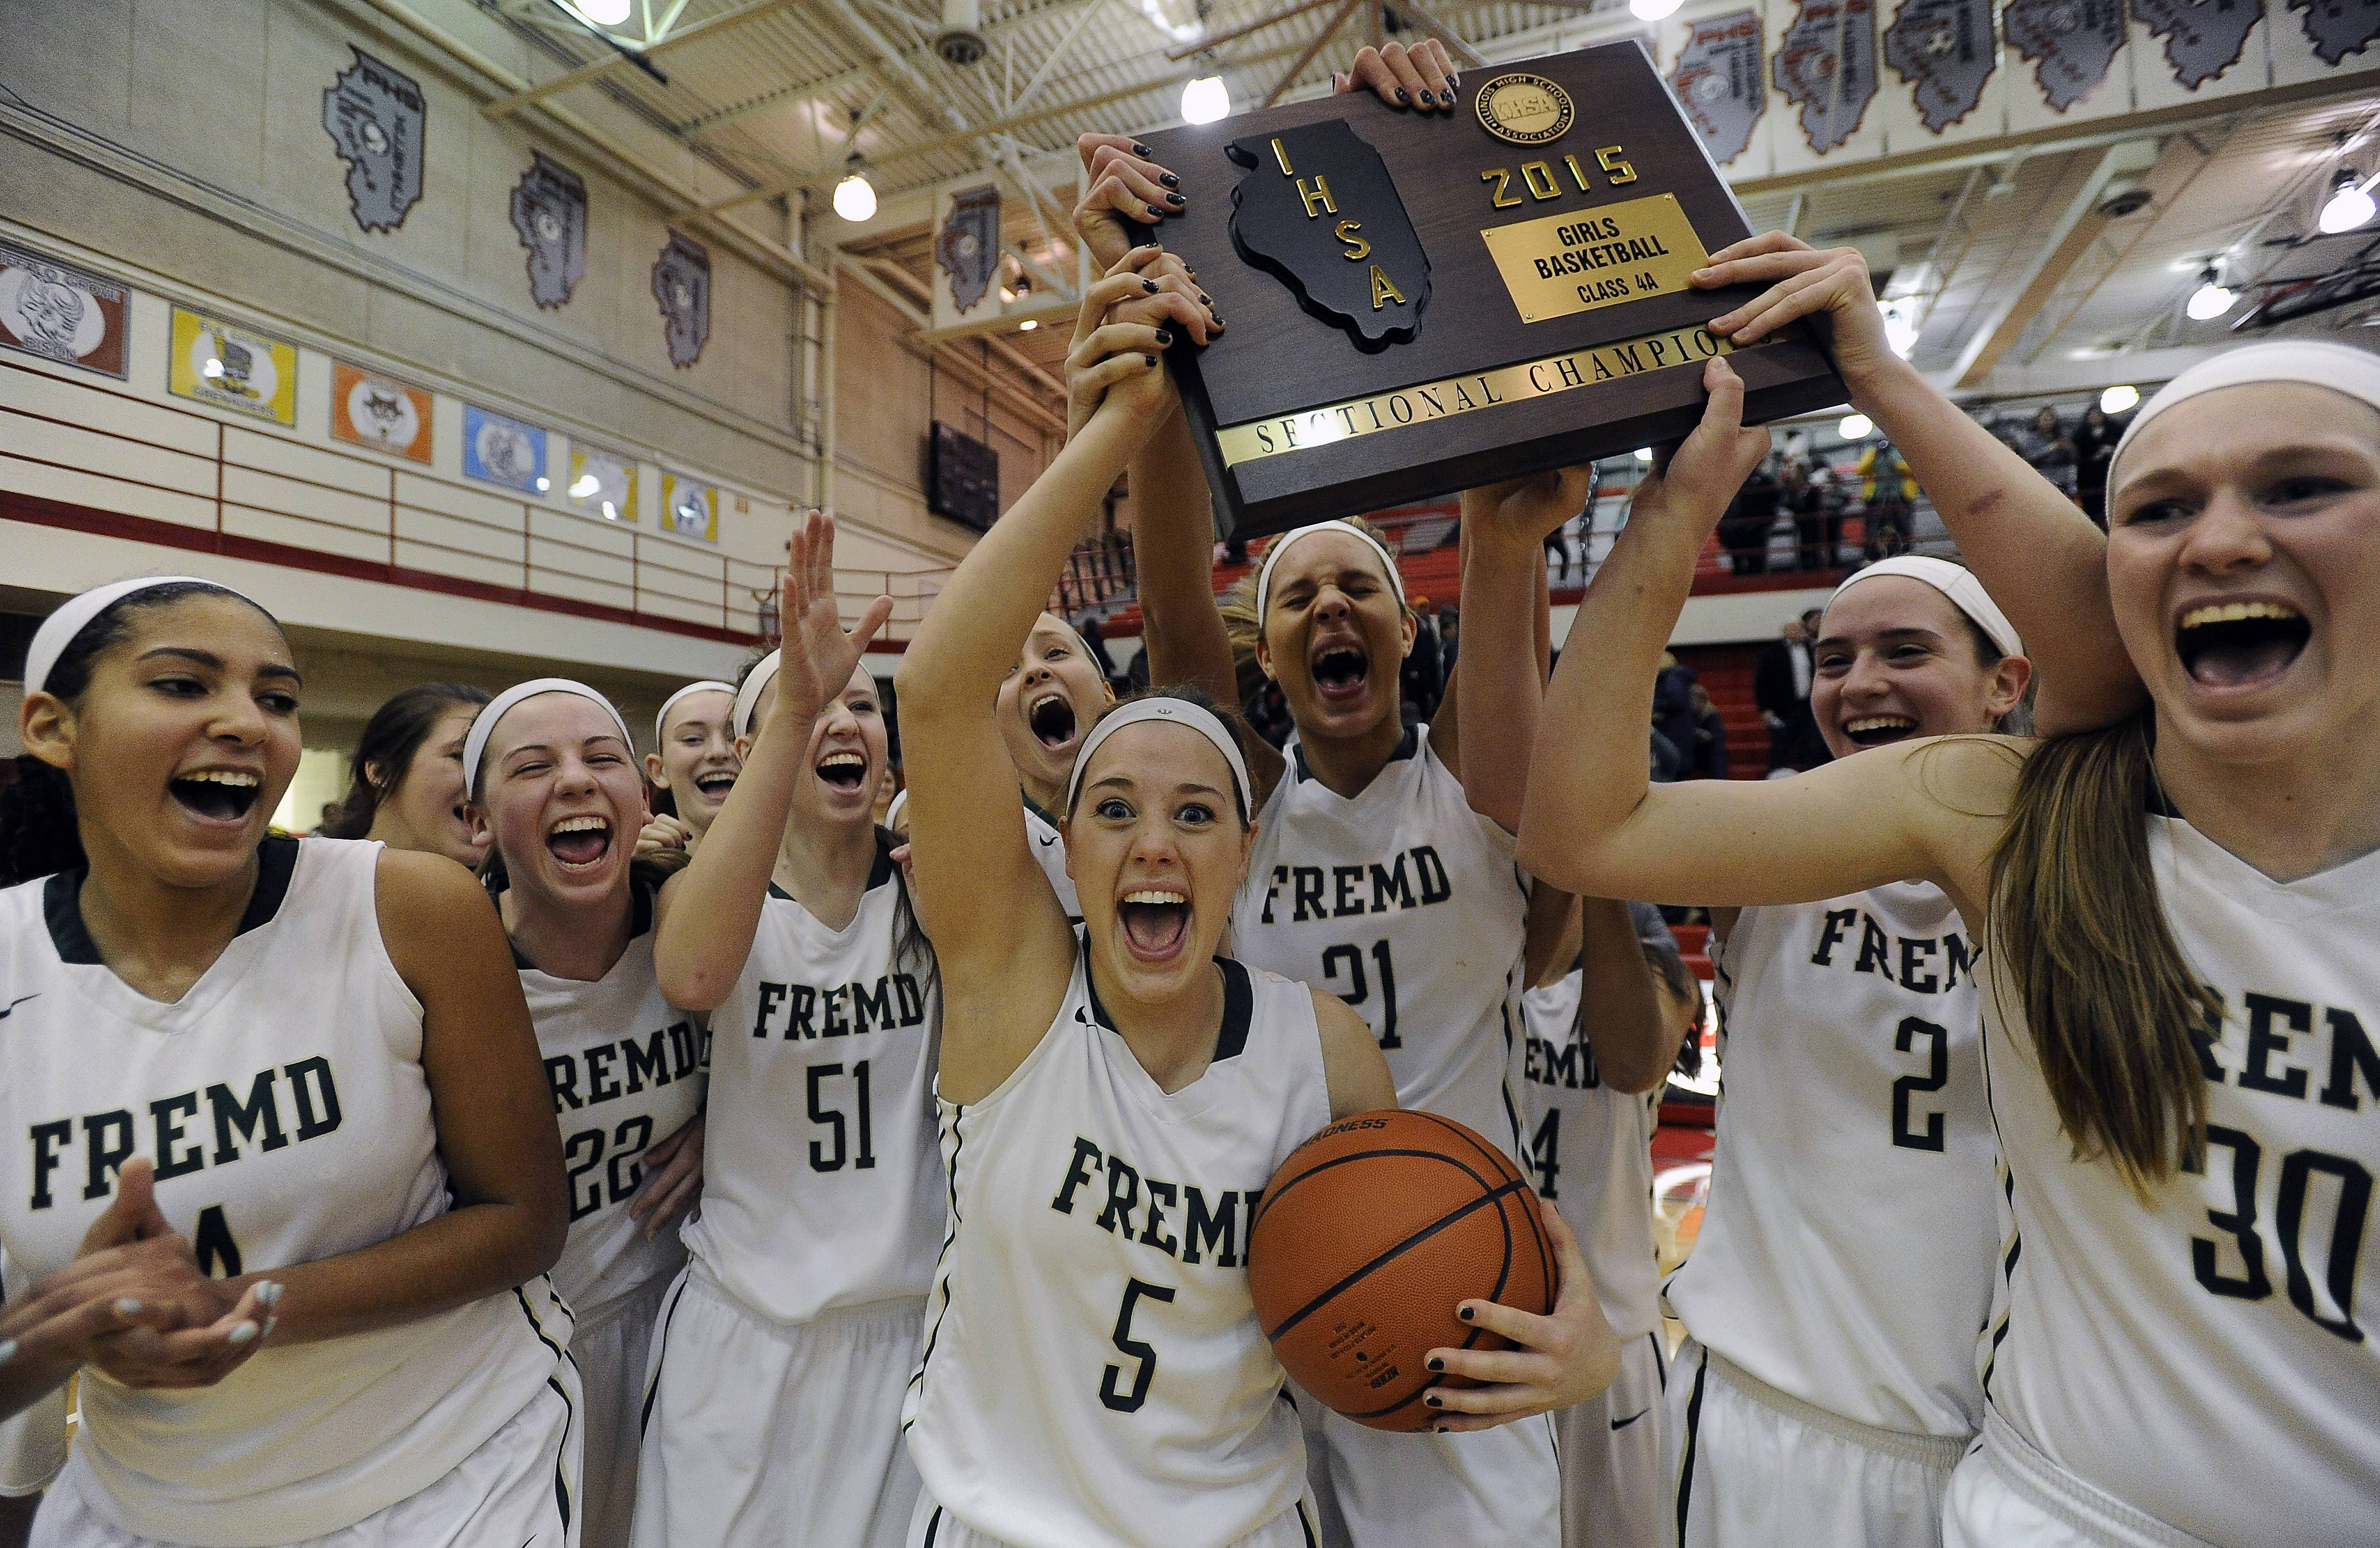 Fremd's Emily Bieda and the rest of her teammates hold up their trophy after beating Hersey in the girls Class 4A sectional championship game at Palatine High School on Thursday.